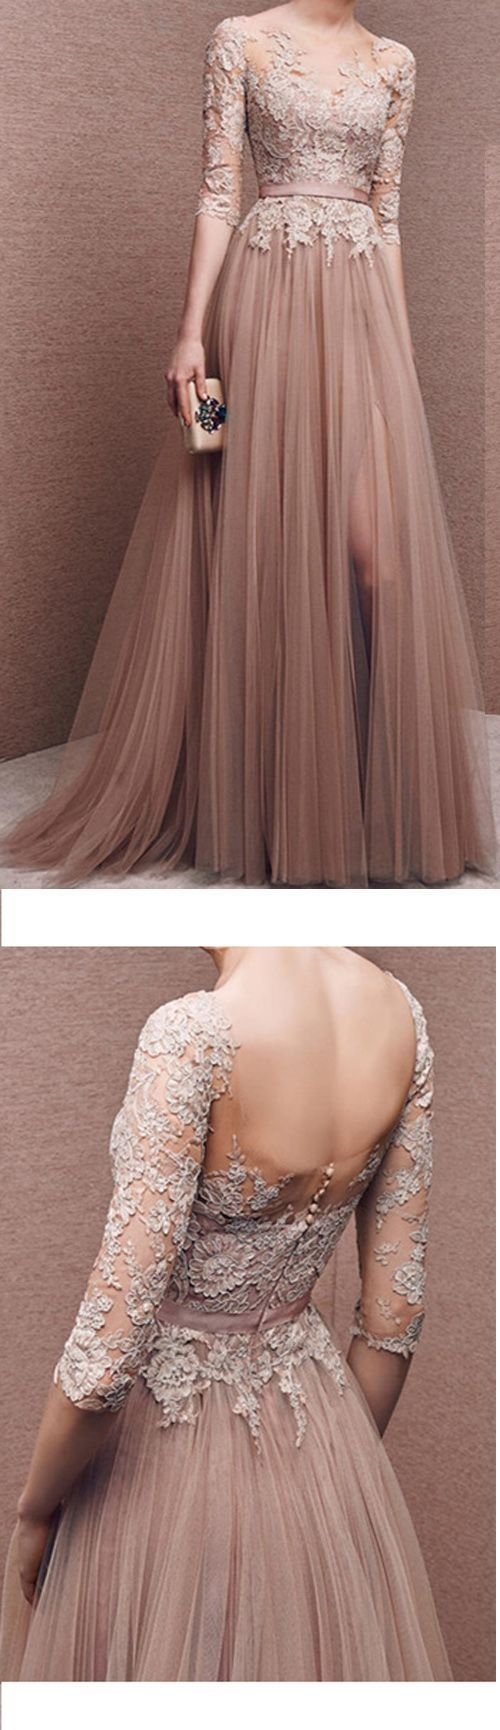 Charming prom dresstulle prom dresshalfsleeves prom dress